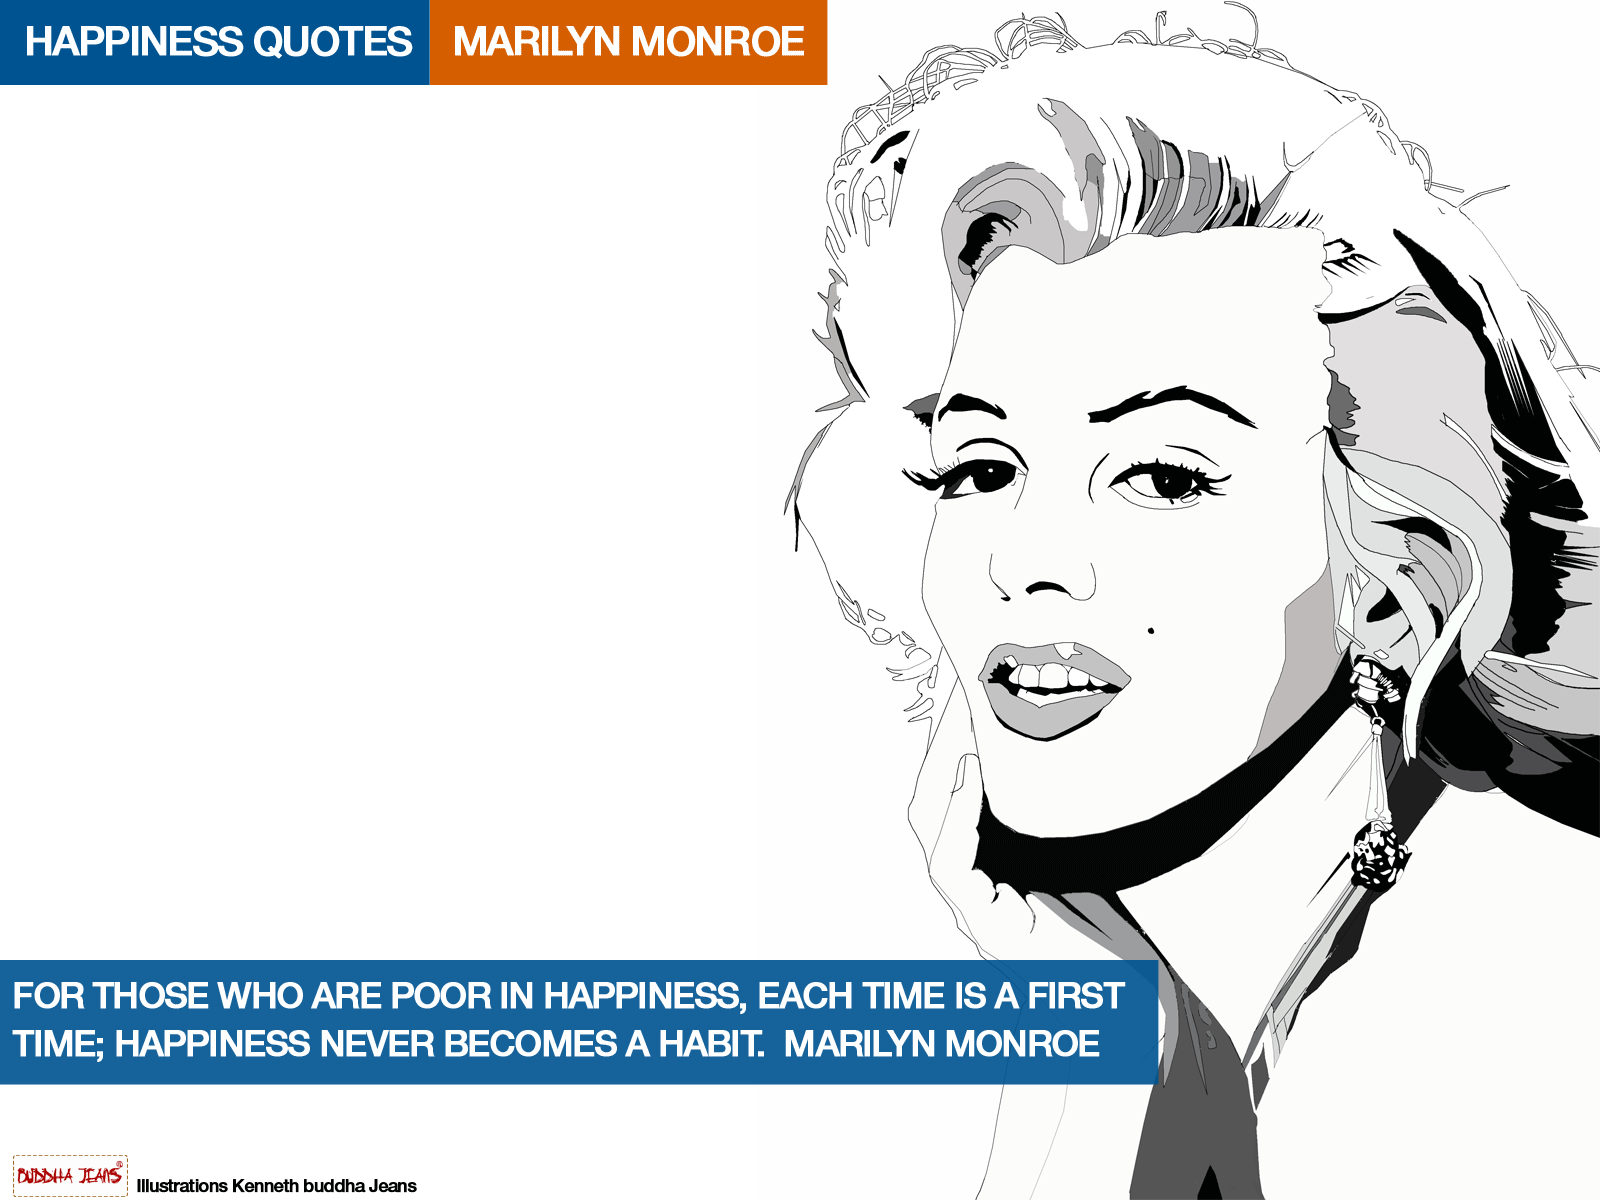 marilyn-monroe-happiness-quotes